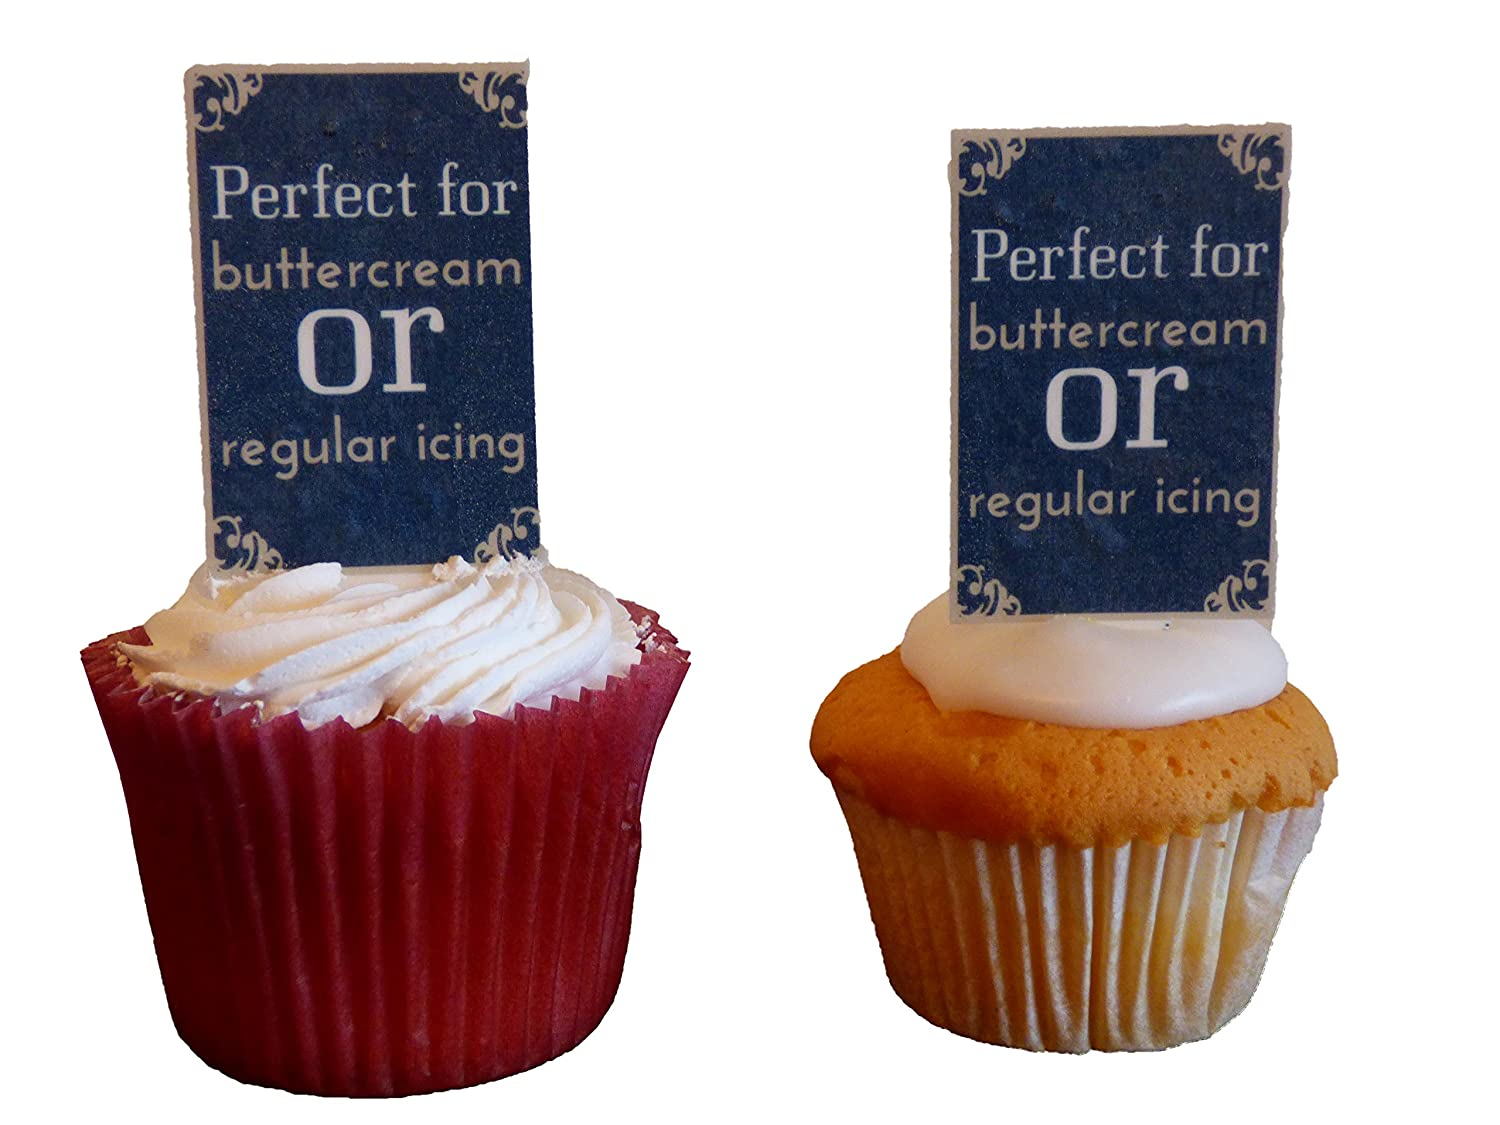 Edible Cupcake Toppers Made4You Class of 2019 Graduation Chalkboard Stand-up Wafer Cake Decorations Pack of 12